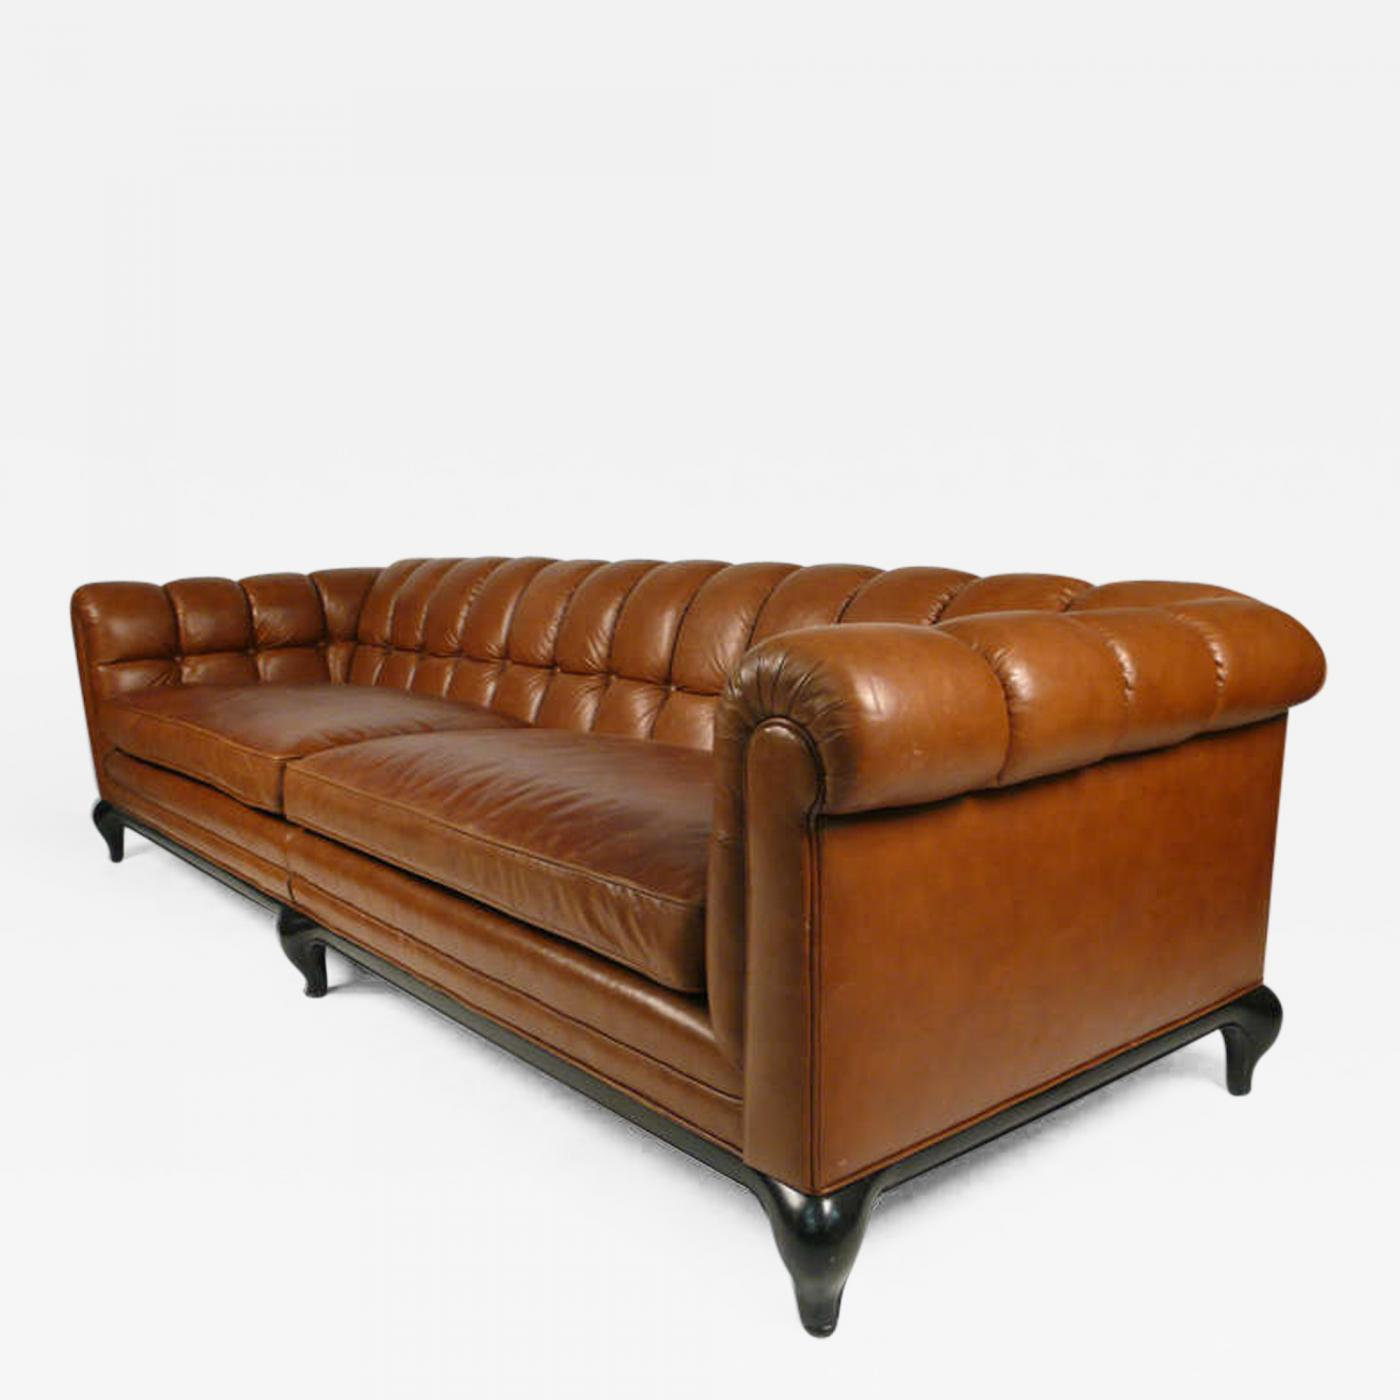 Maurice Bailey - Biscuit Tufted Leather Sofa by Maurice Bailey for  Monteverdi-Young